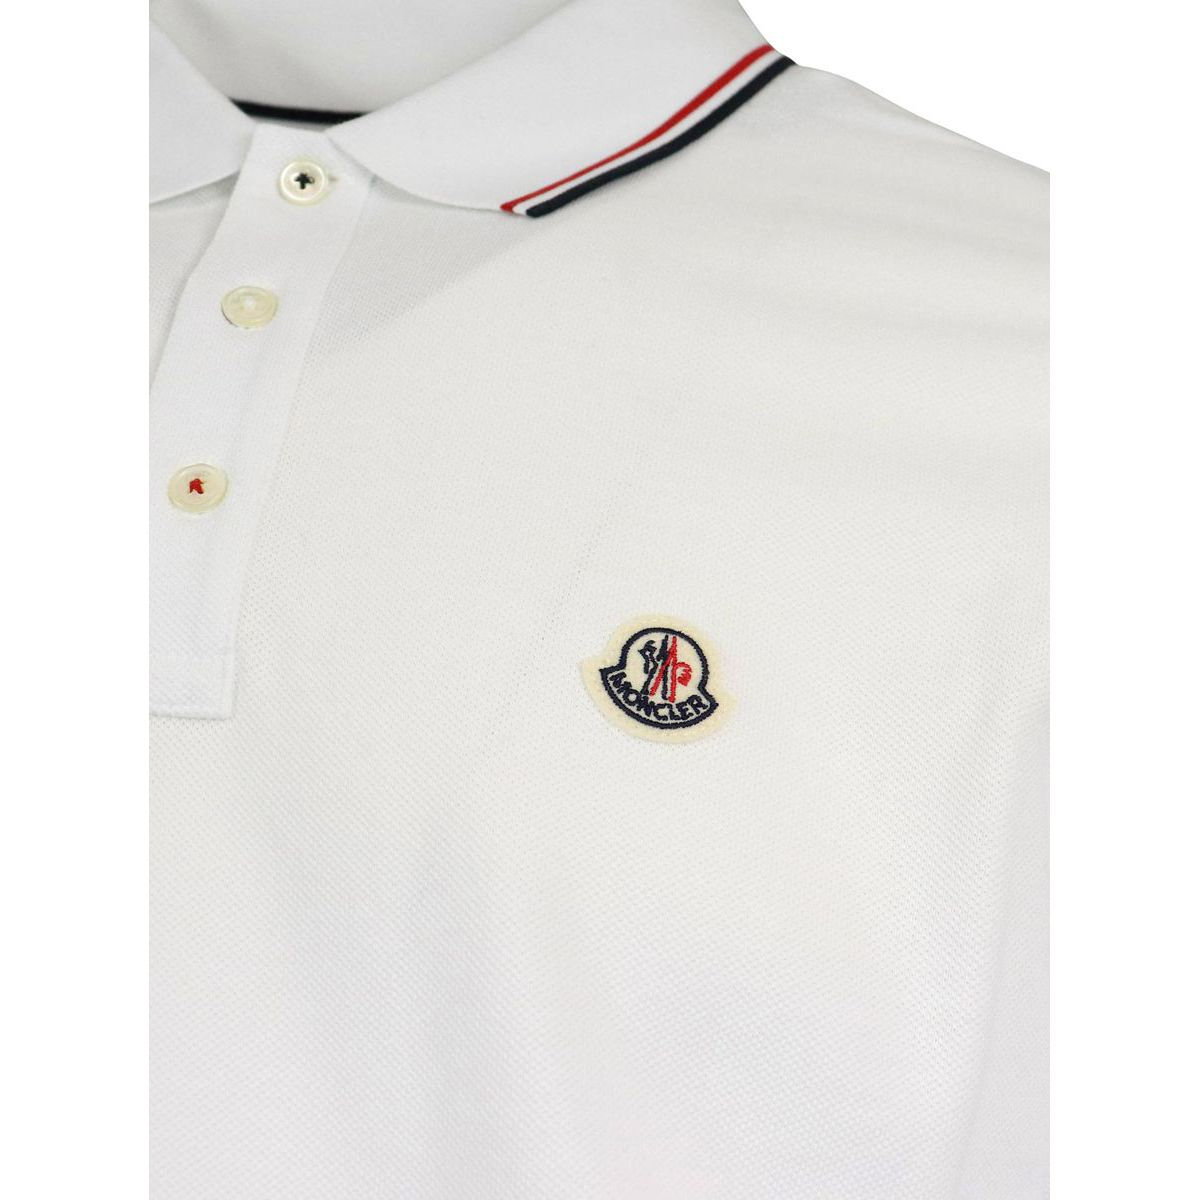 3 button cotton polo shirt with trim and logo White Moncler